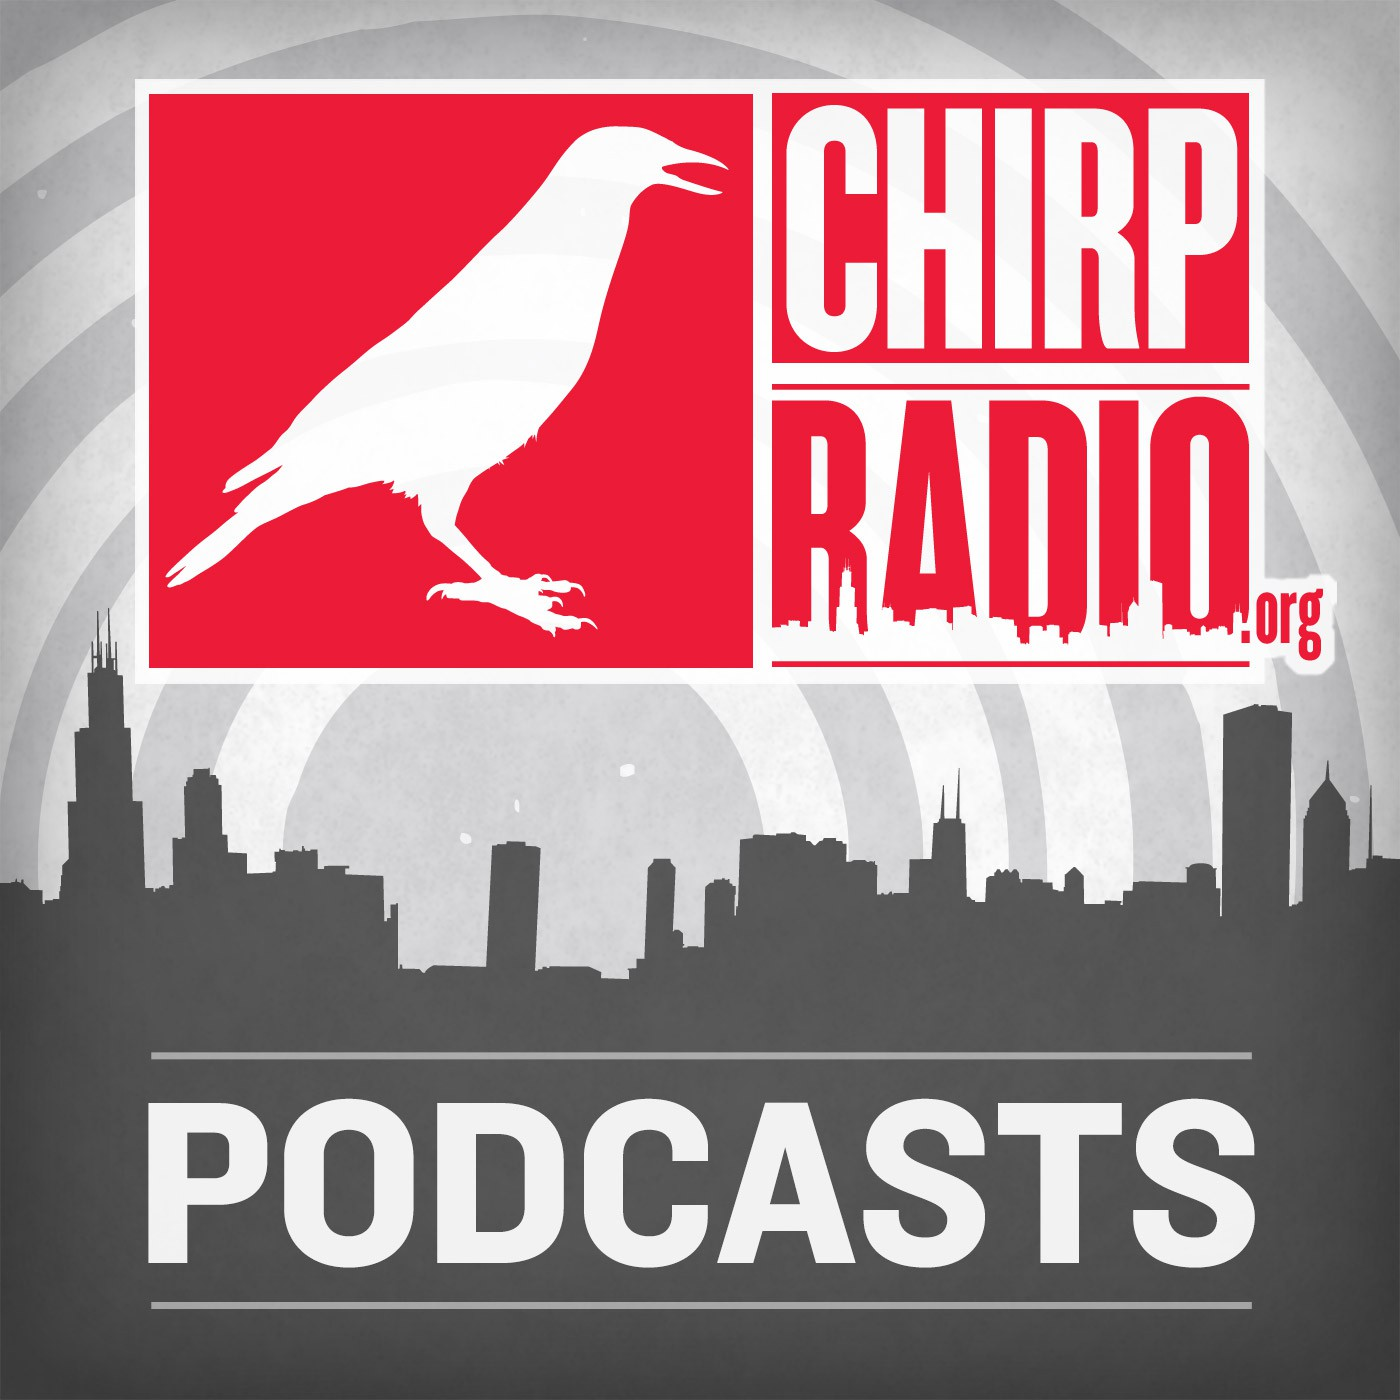 CHIRP Radio Podcasts